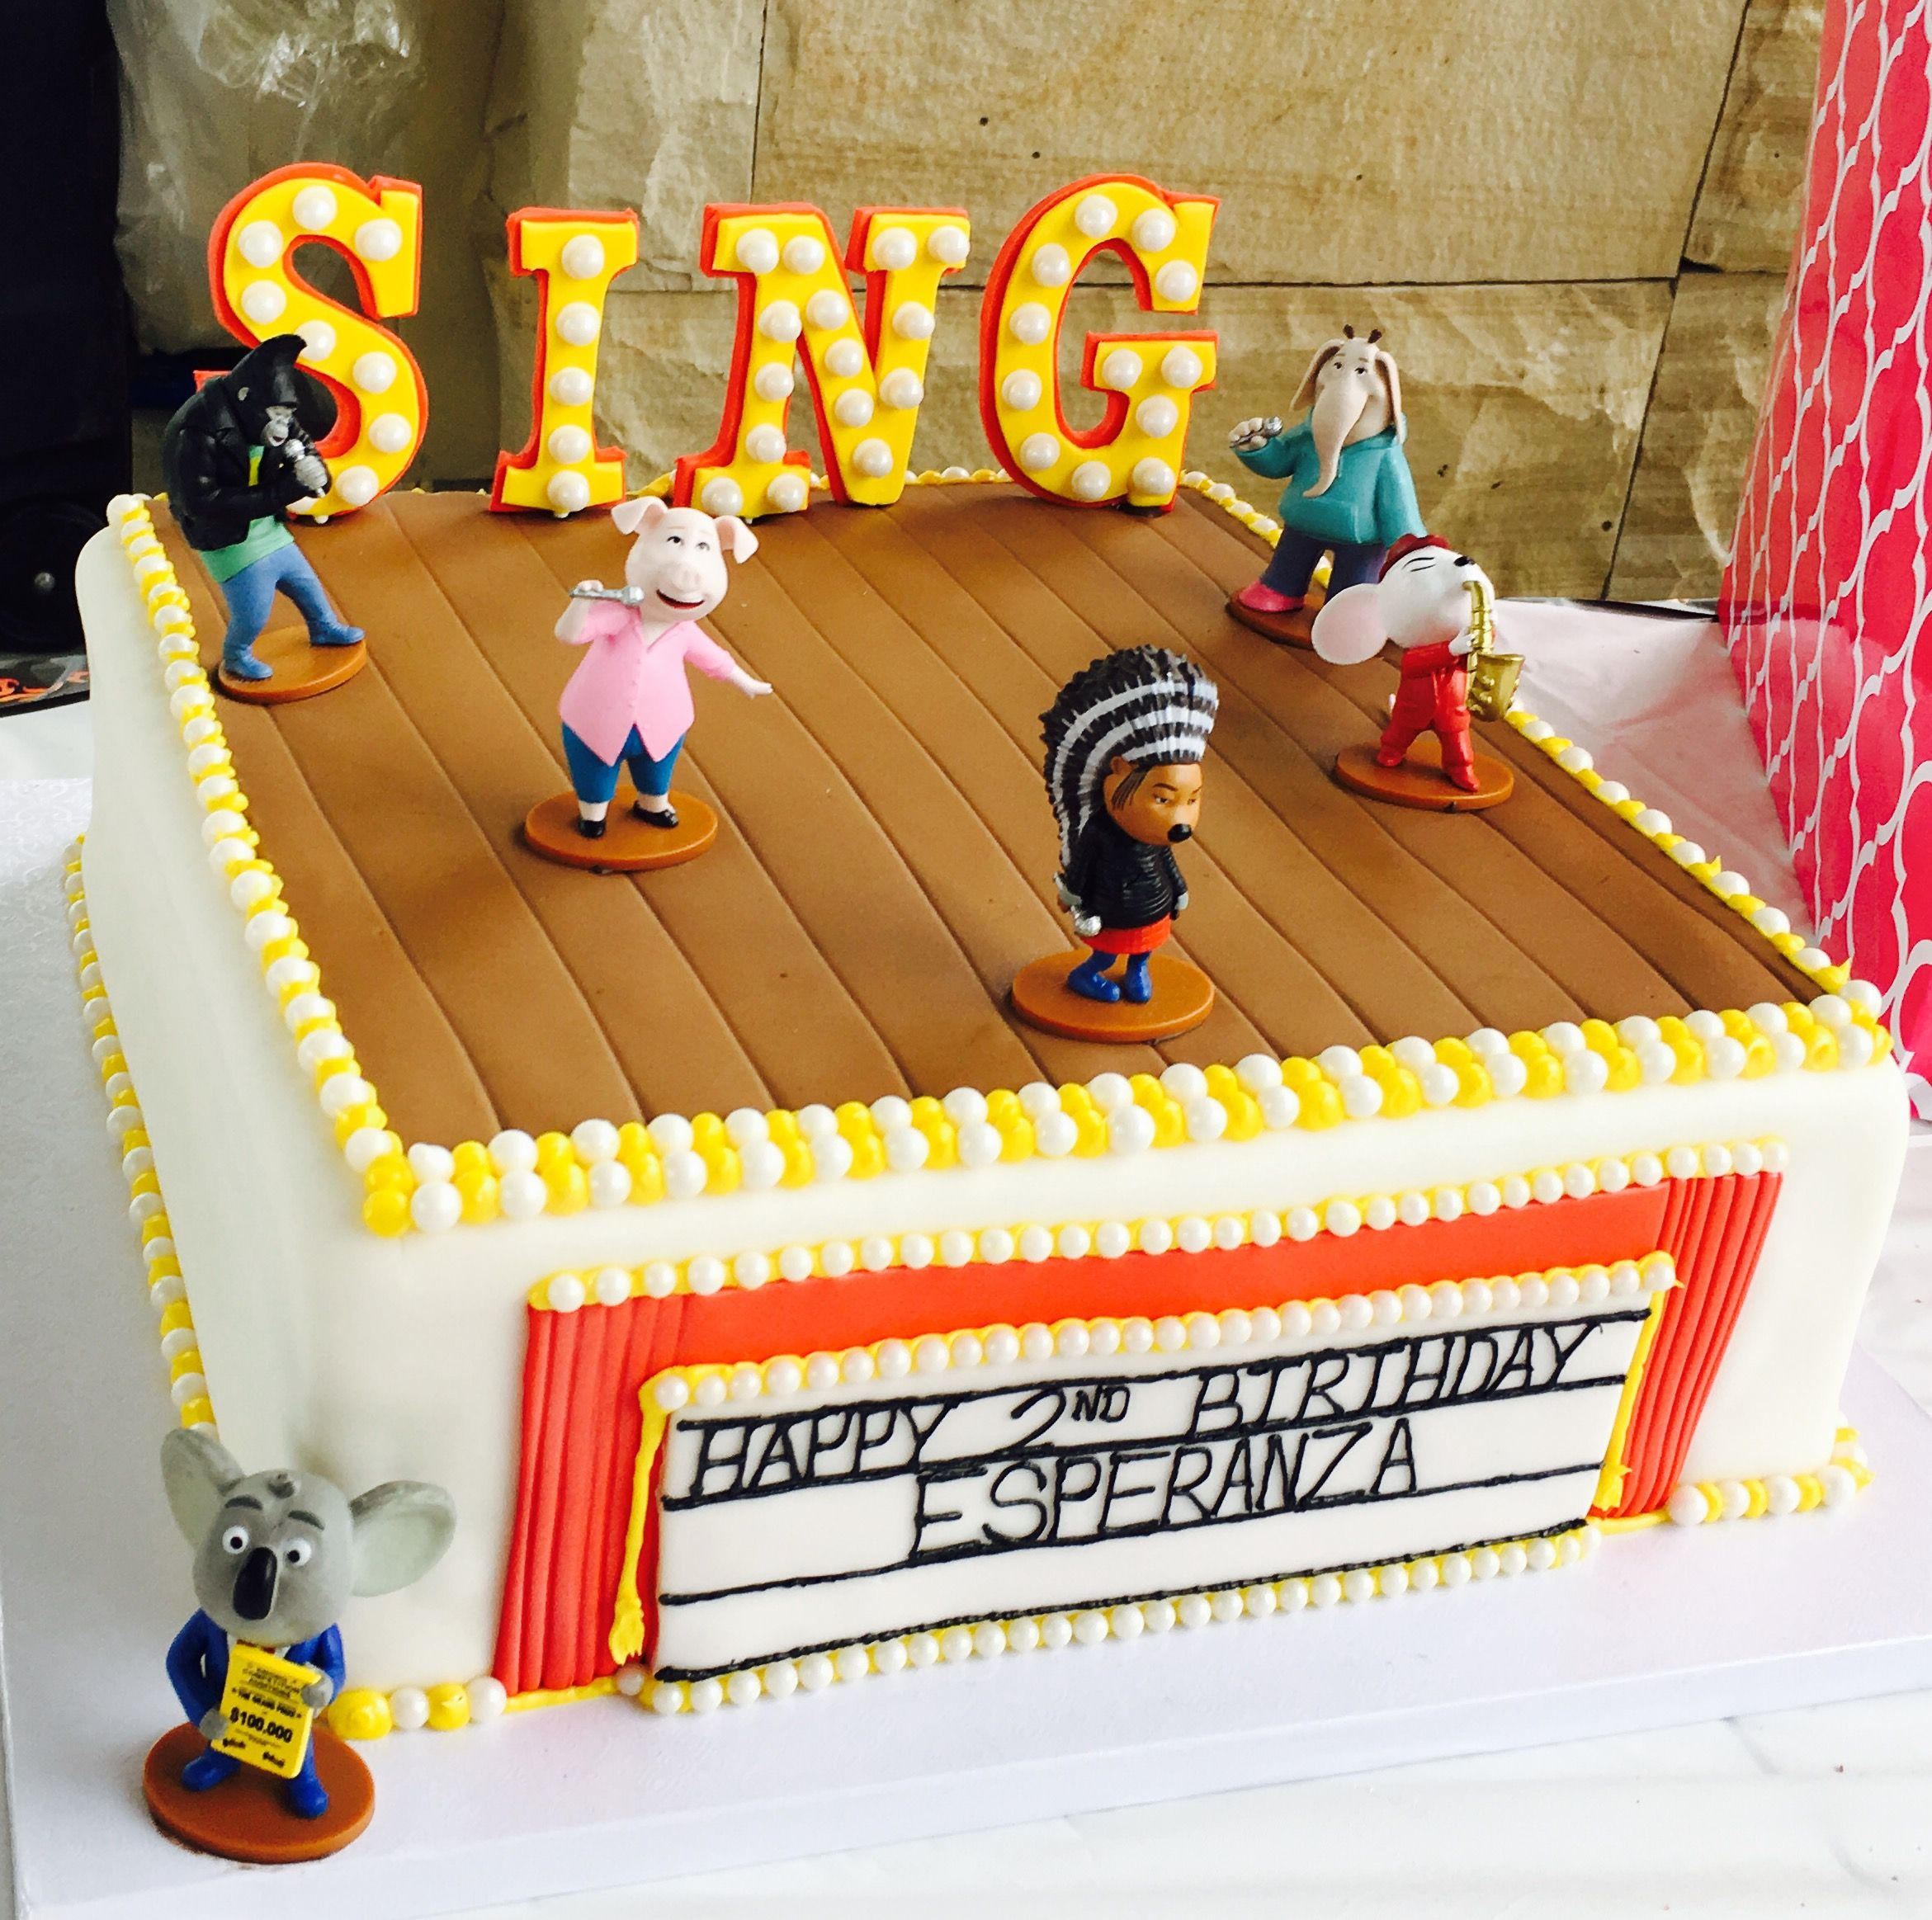 Sing Birthday Cake created by Azucar Bakery in Denver Colorado For